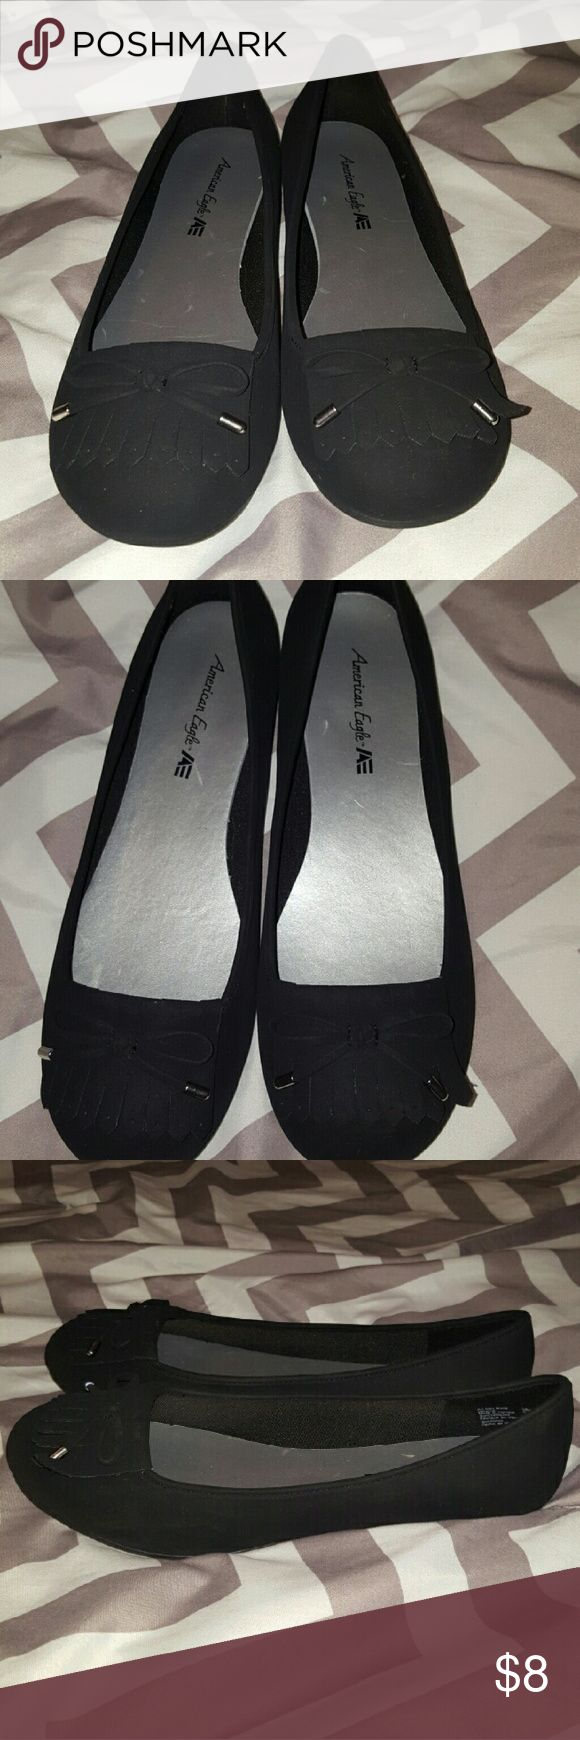 Black flats Brand new pair of black flats, velvety look and feel on the outside  (man made material). Cute fringe on top. Size 8 1/2 W. Reasonable offers welcome 😊 American Eagle by Payless Shoes Flats & Loafers